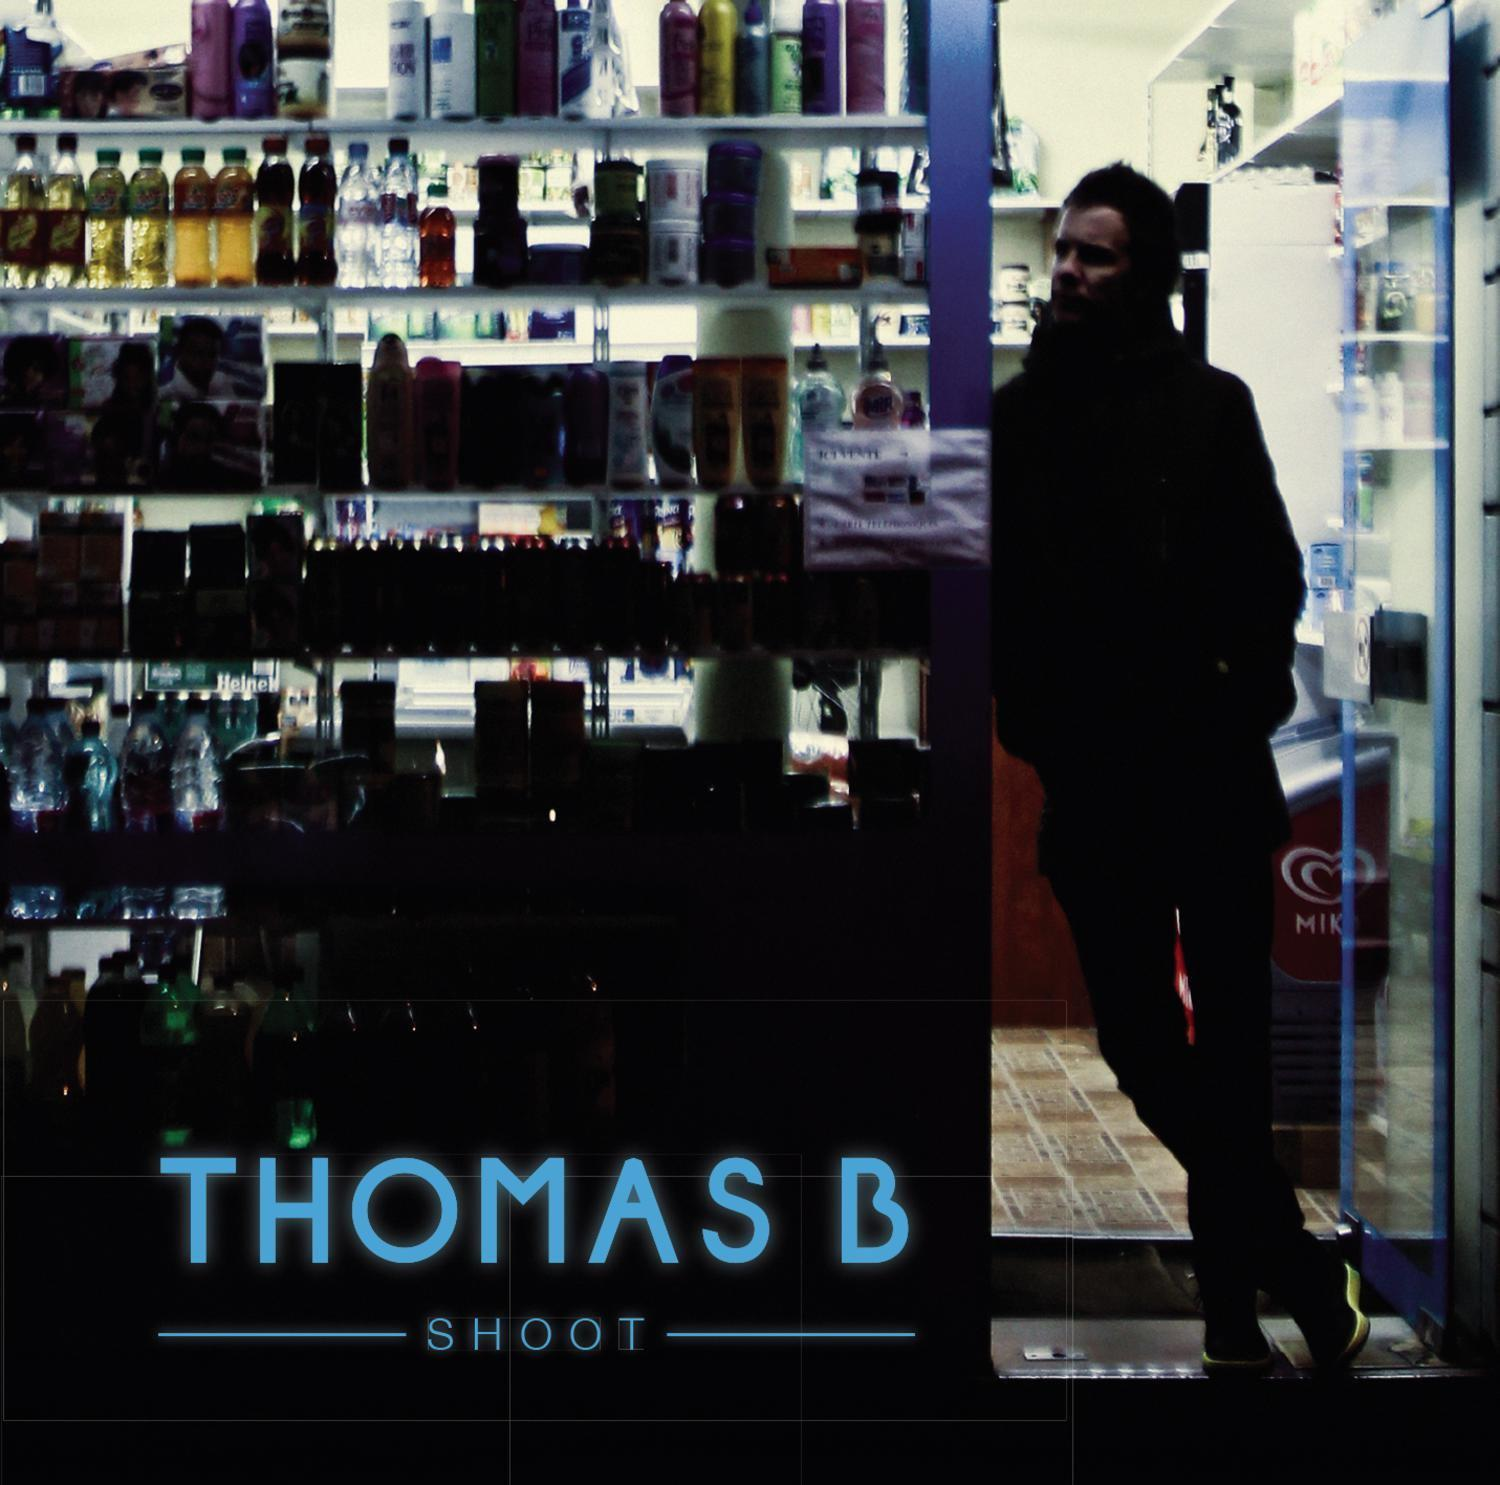 Thomas B - Shoot (2014) [MULTI]